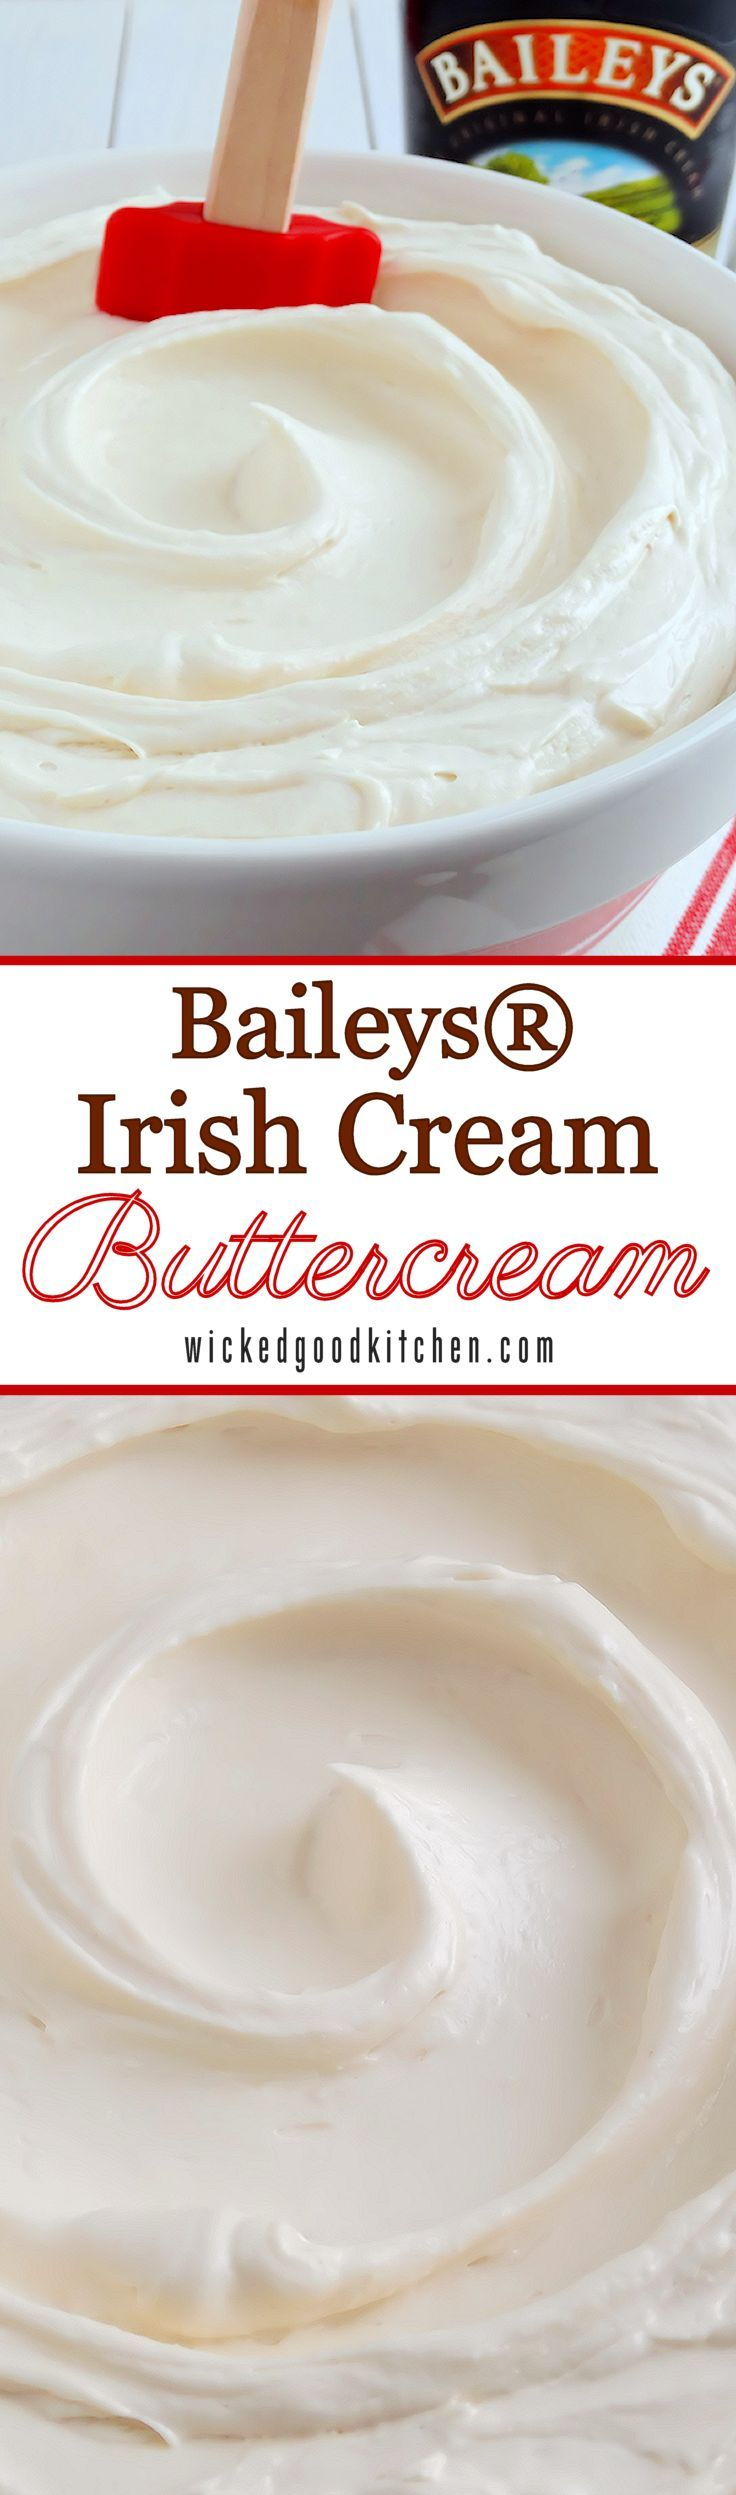 Best Ever Bailey's Irish Cream Buttercream ~ Creamy, silky and incredibly light, infused with plenty of pleasing caramel notes, melts on the tongue and is not too sweet. The perfect frosting for cakes and cupcakes! Includes variation for Baileys® Coffee Buttercream. You're going to LOVE it!